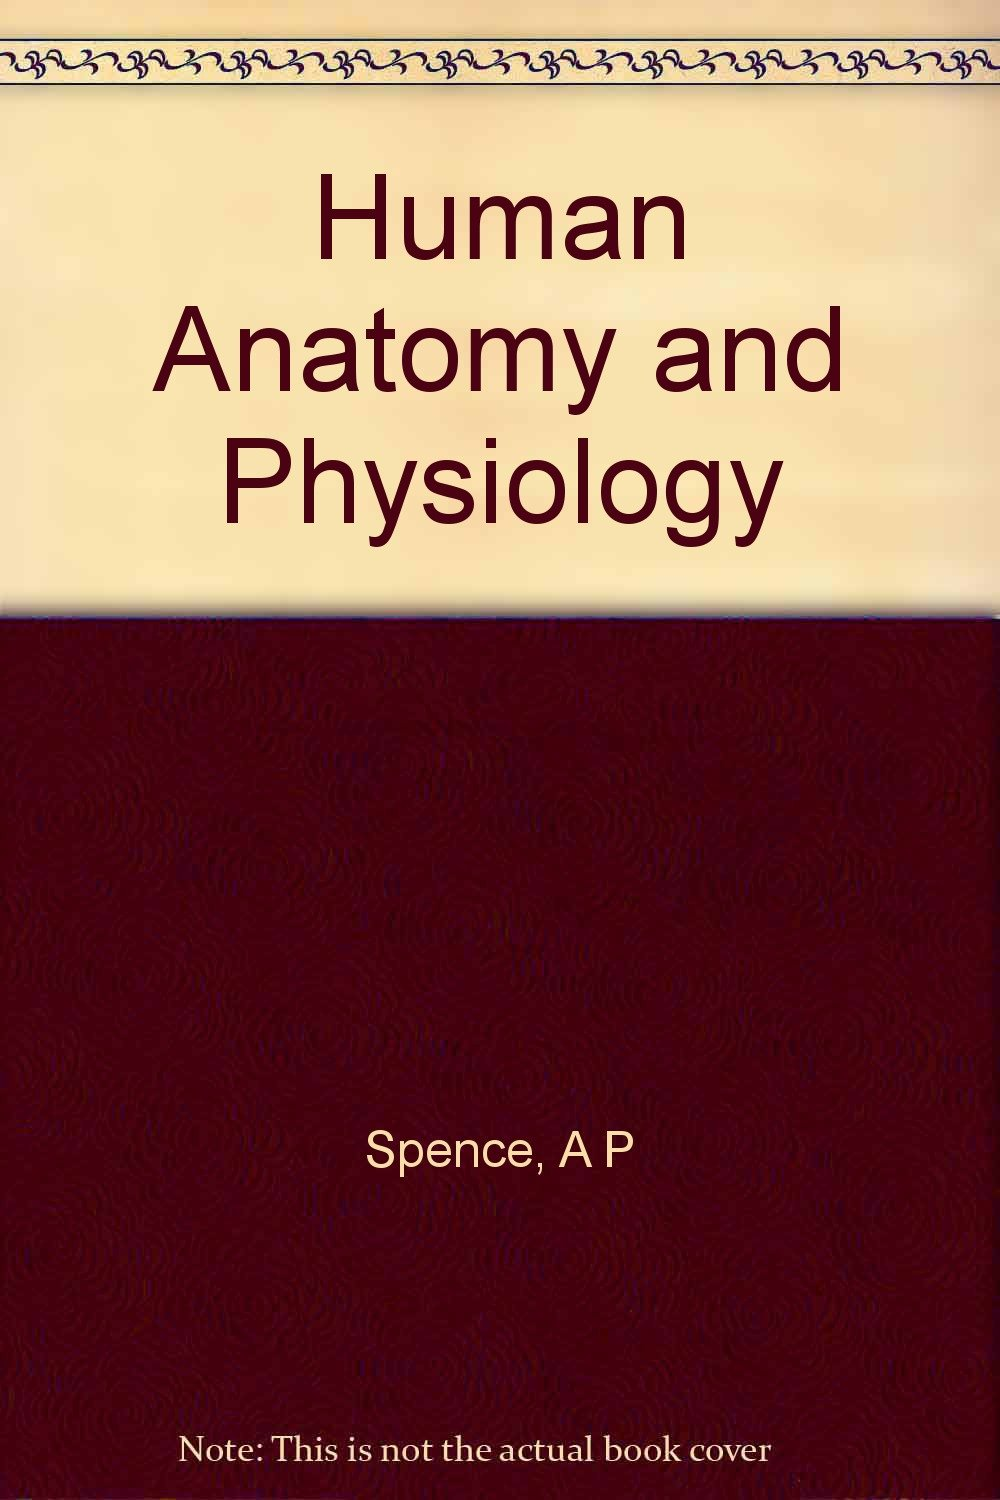 Human Anatomy and Physiology: Amazon.co.uk: A P Spence: Books